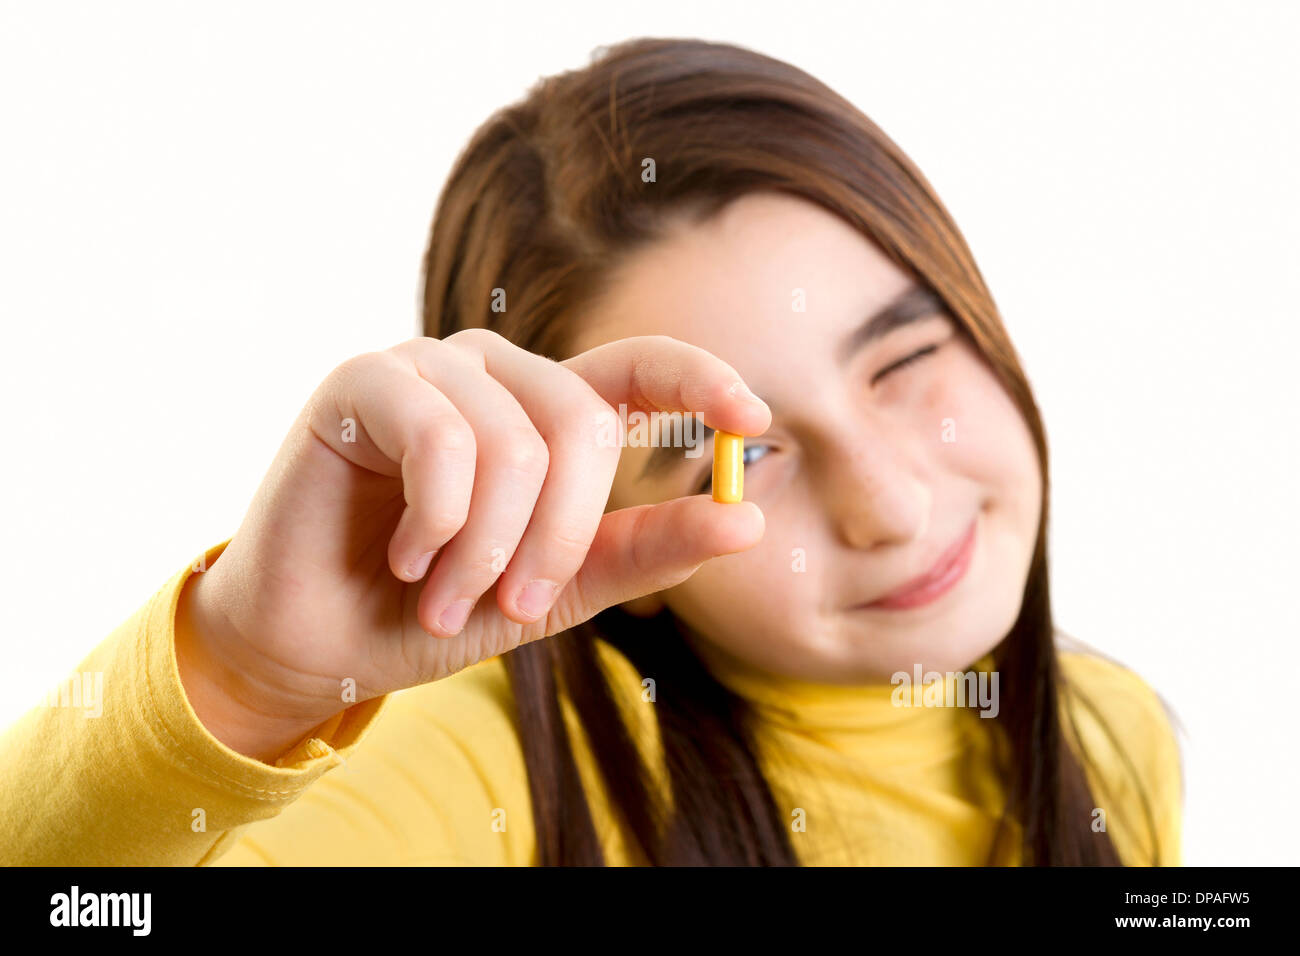 young girl holding and analizing capsule - Stock Image